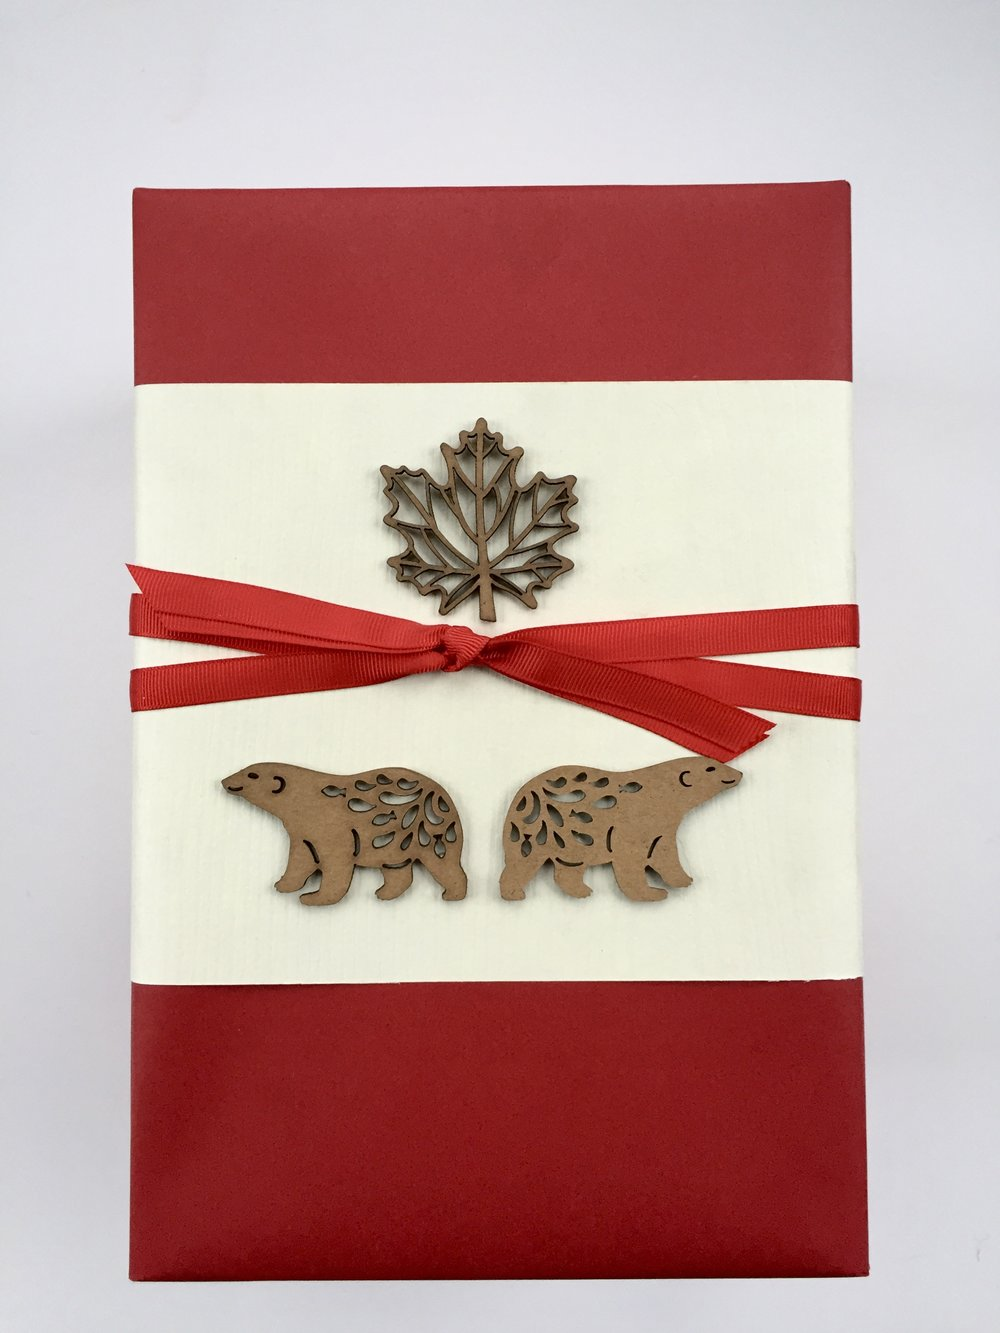 Canadian-themed business gifts, wrapped by Corinna